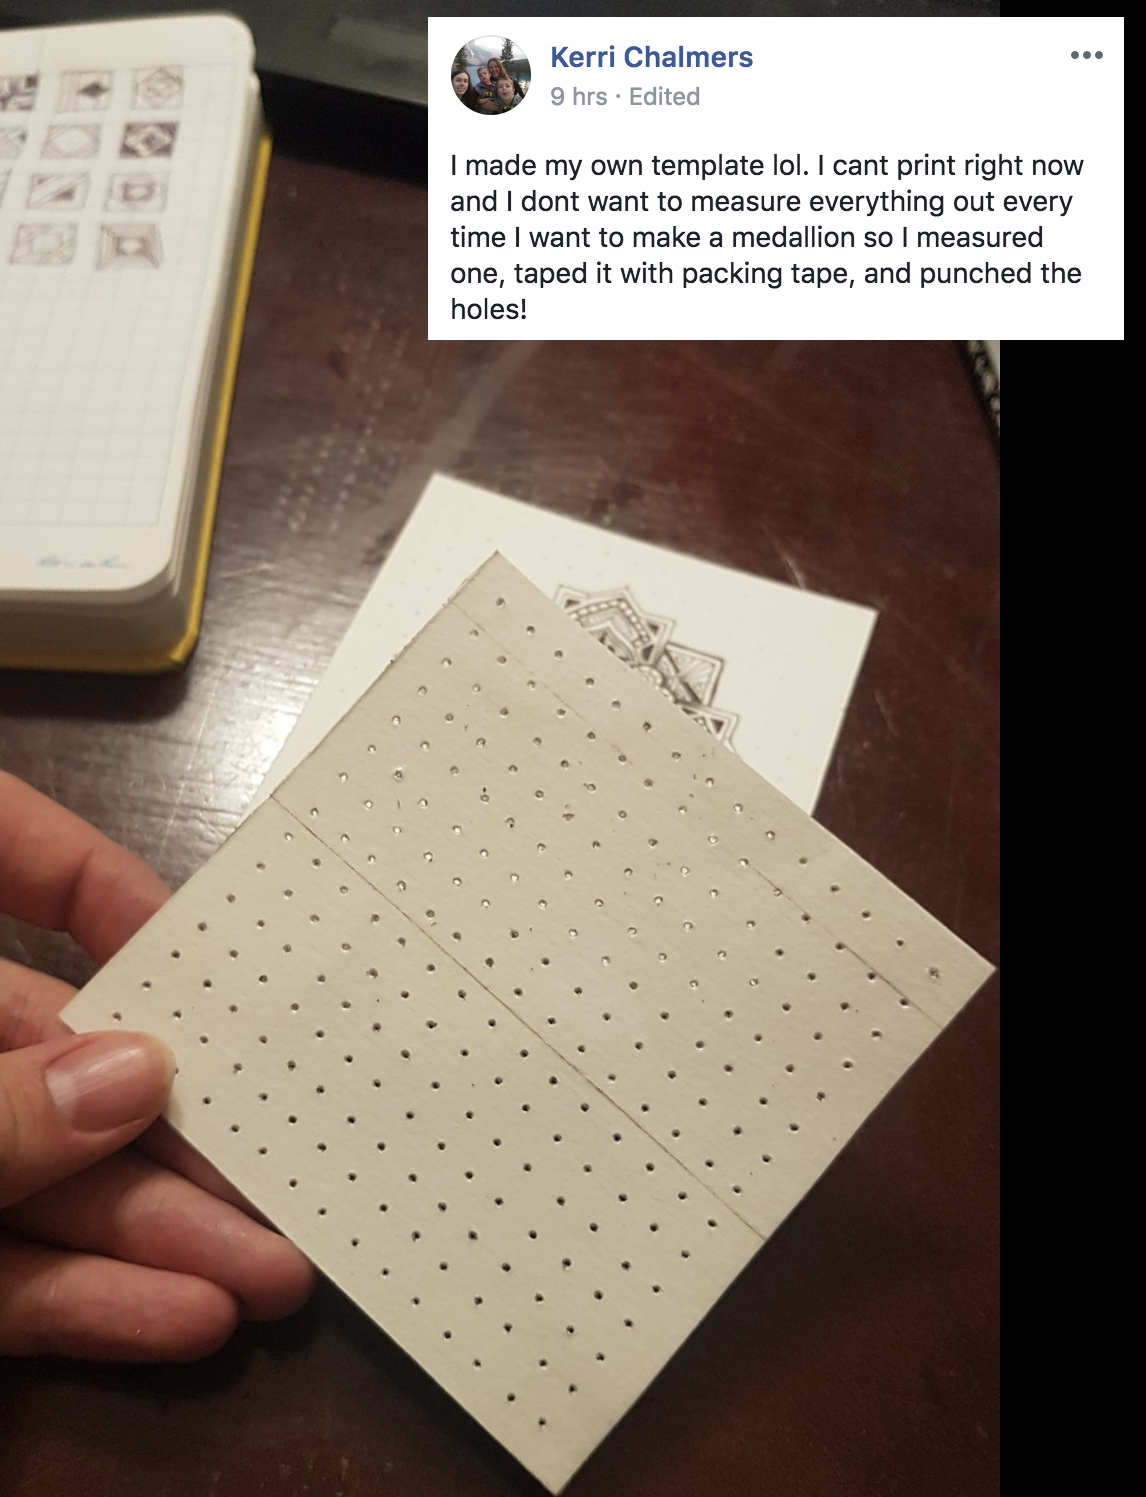 Make your own template! - A really neat idea by Kerri. Mark your own dots on cardstock, tape it with packing transparent tape to make it sturdier and then punch the holes with a thick needle. Brilliant, thank you Kerri!